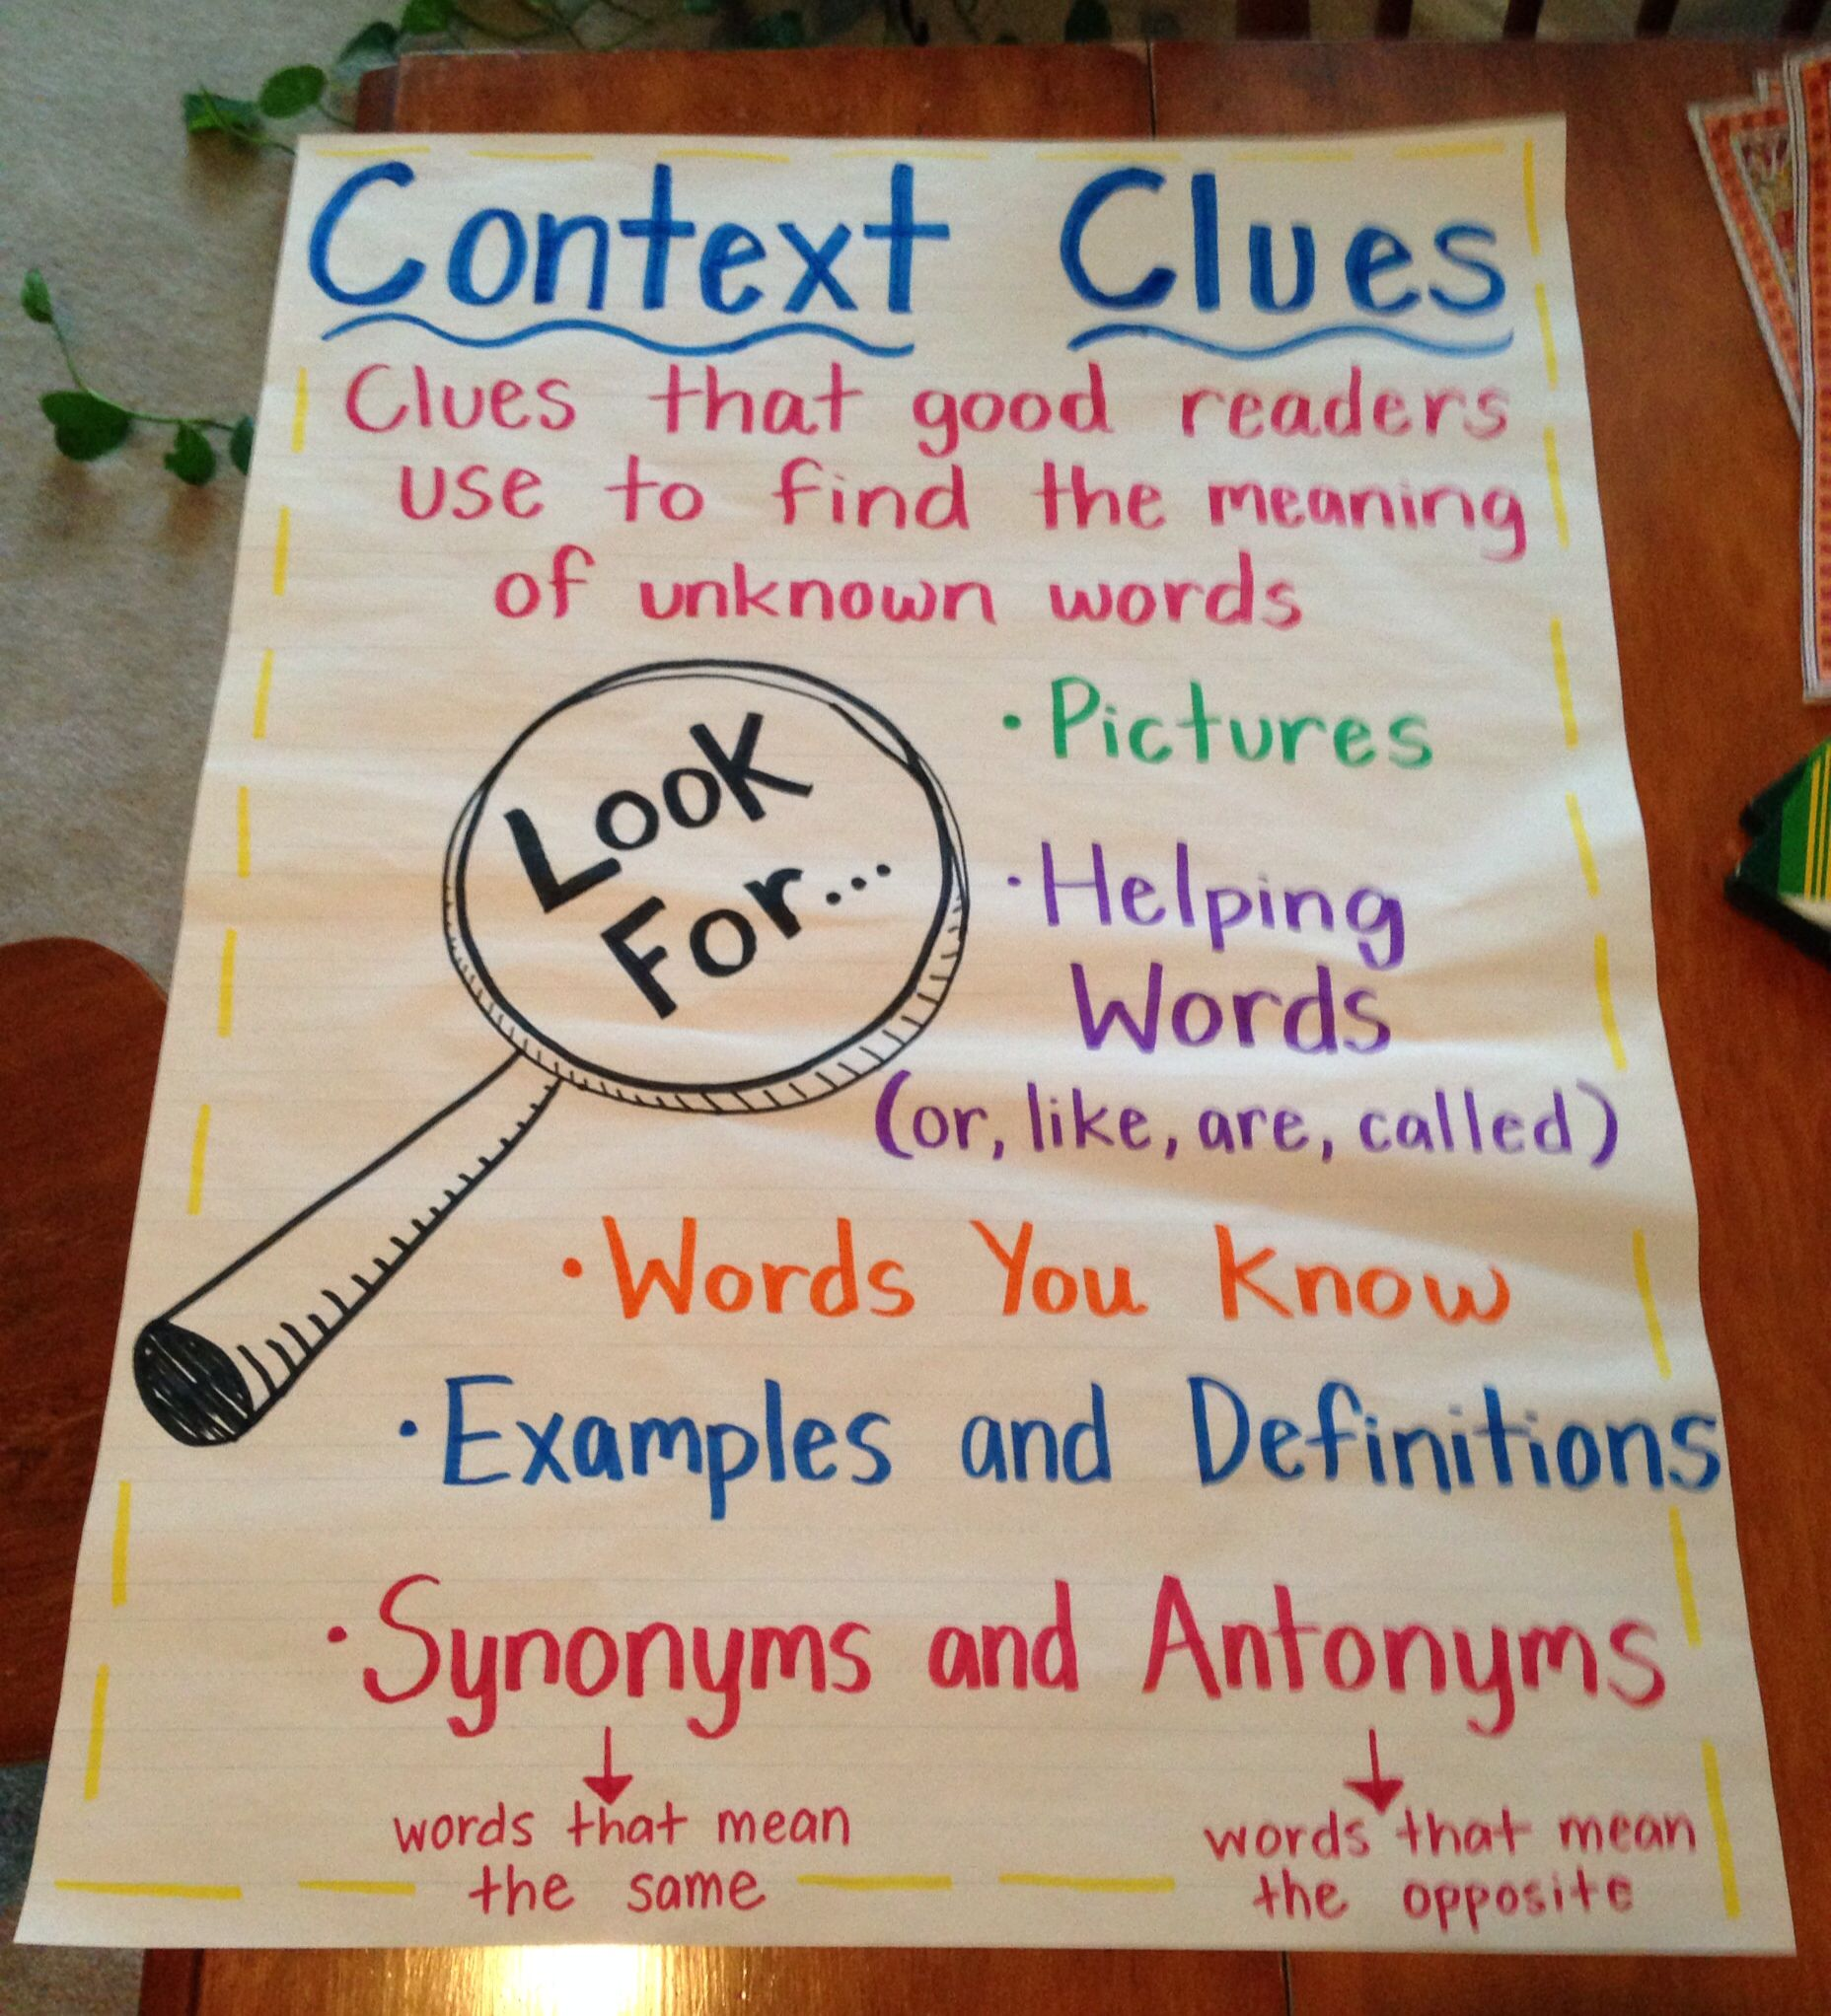 Context Clues That Readers Use To Find The Meaning Of Unknown Words Photo Link Only